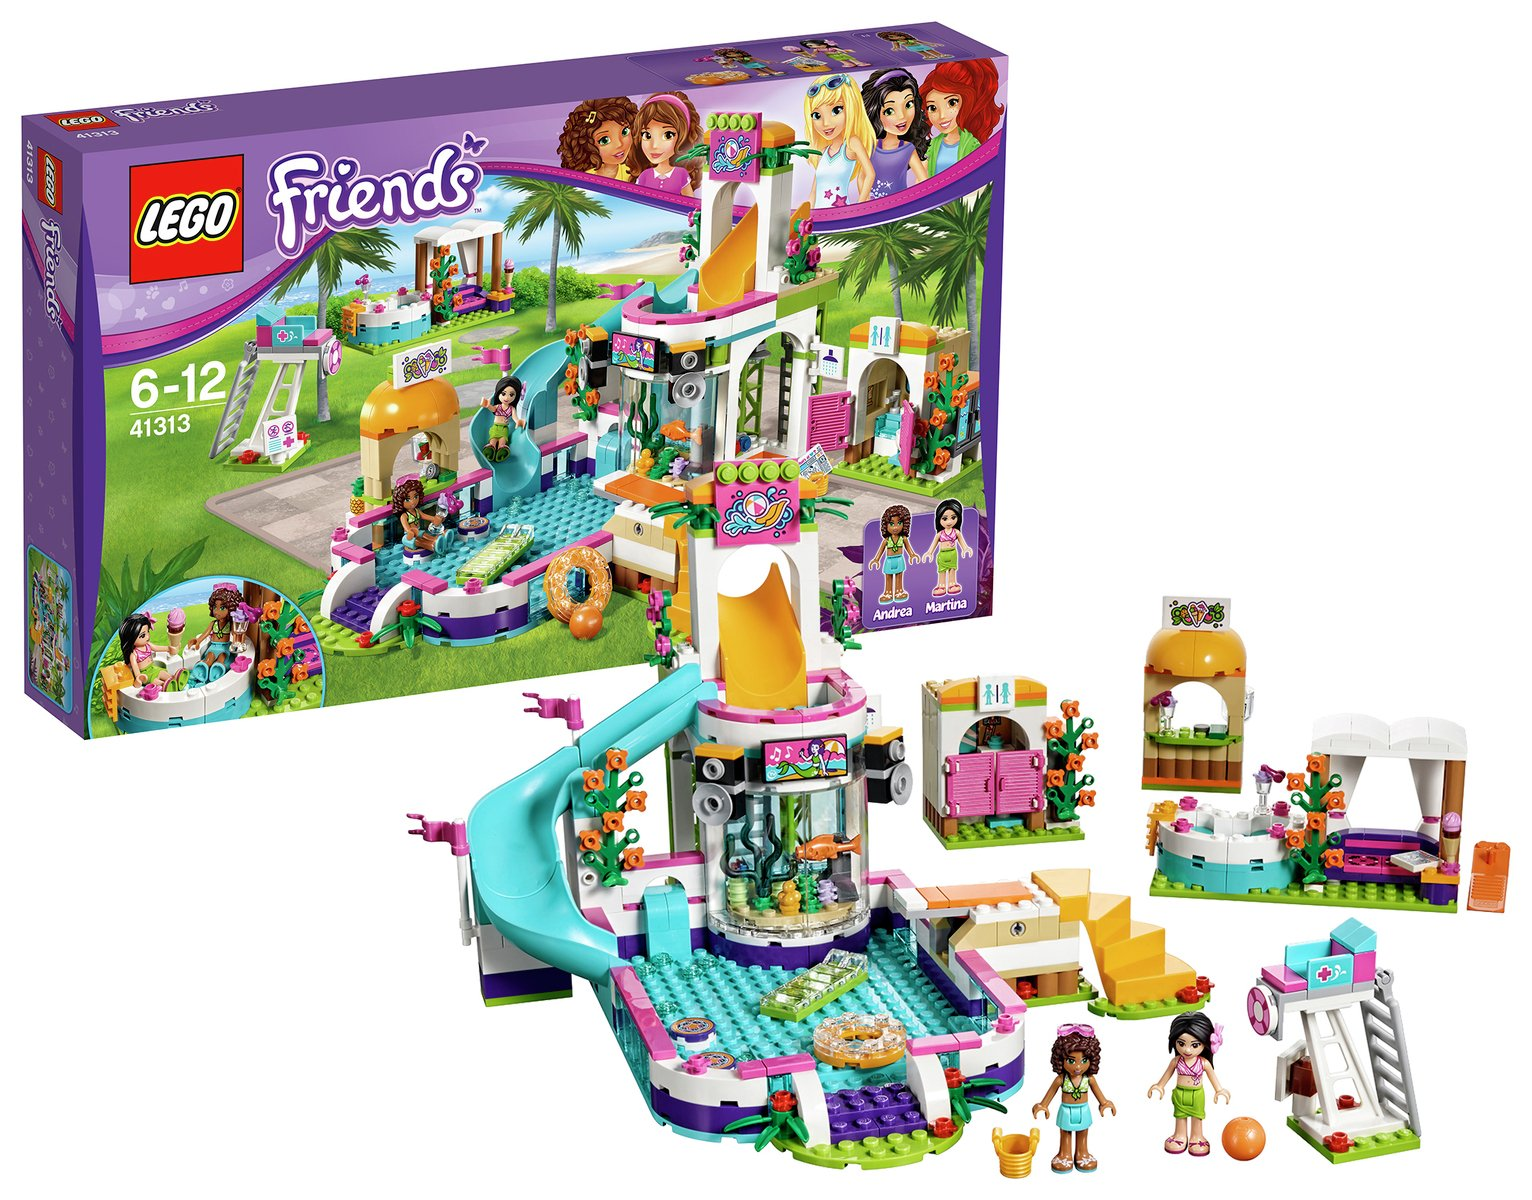 LEGO Friends Heartlake Summer Pool - 41313